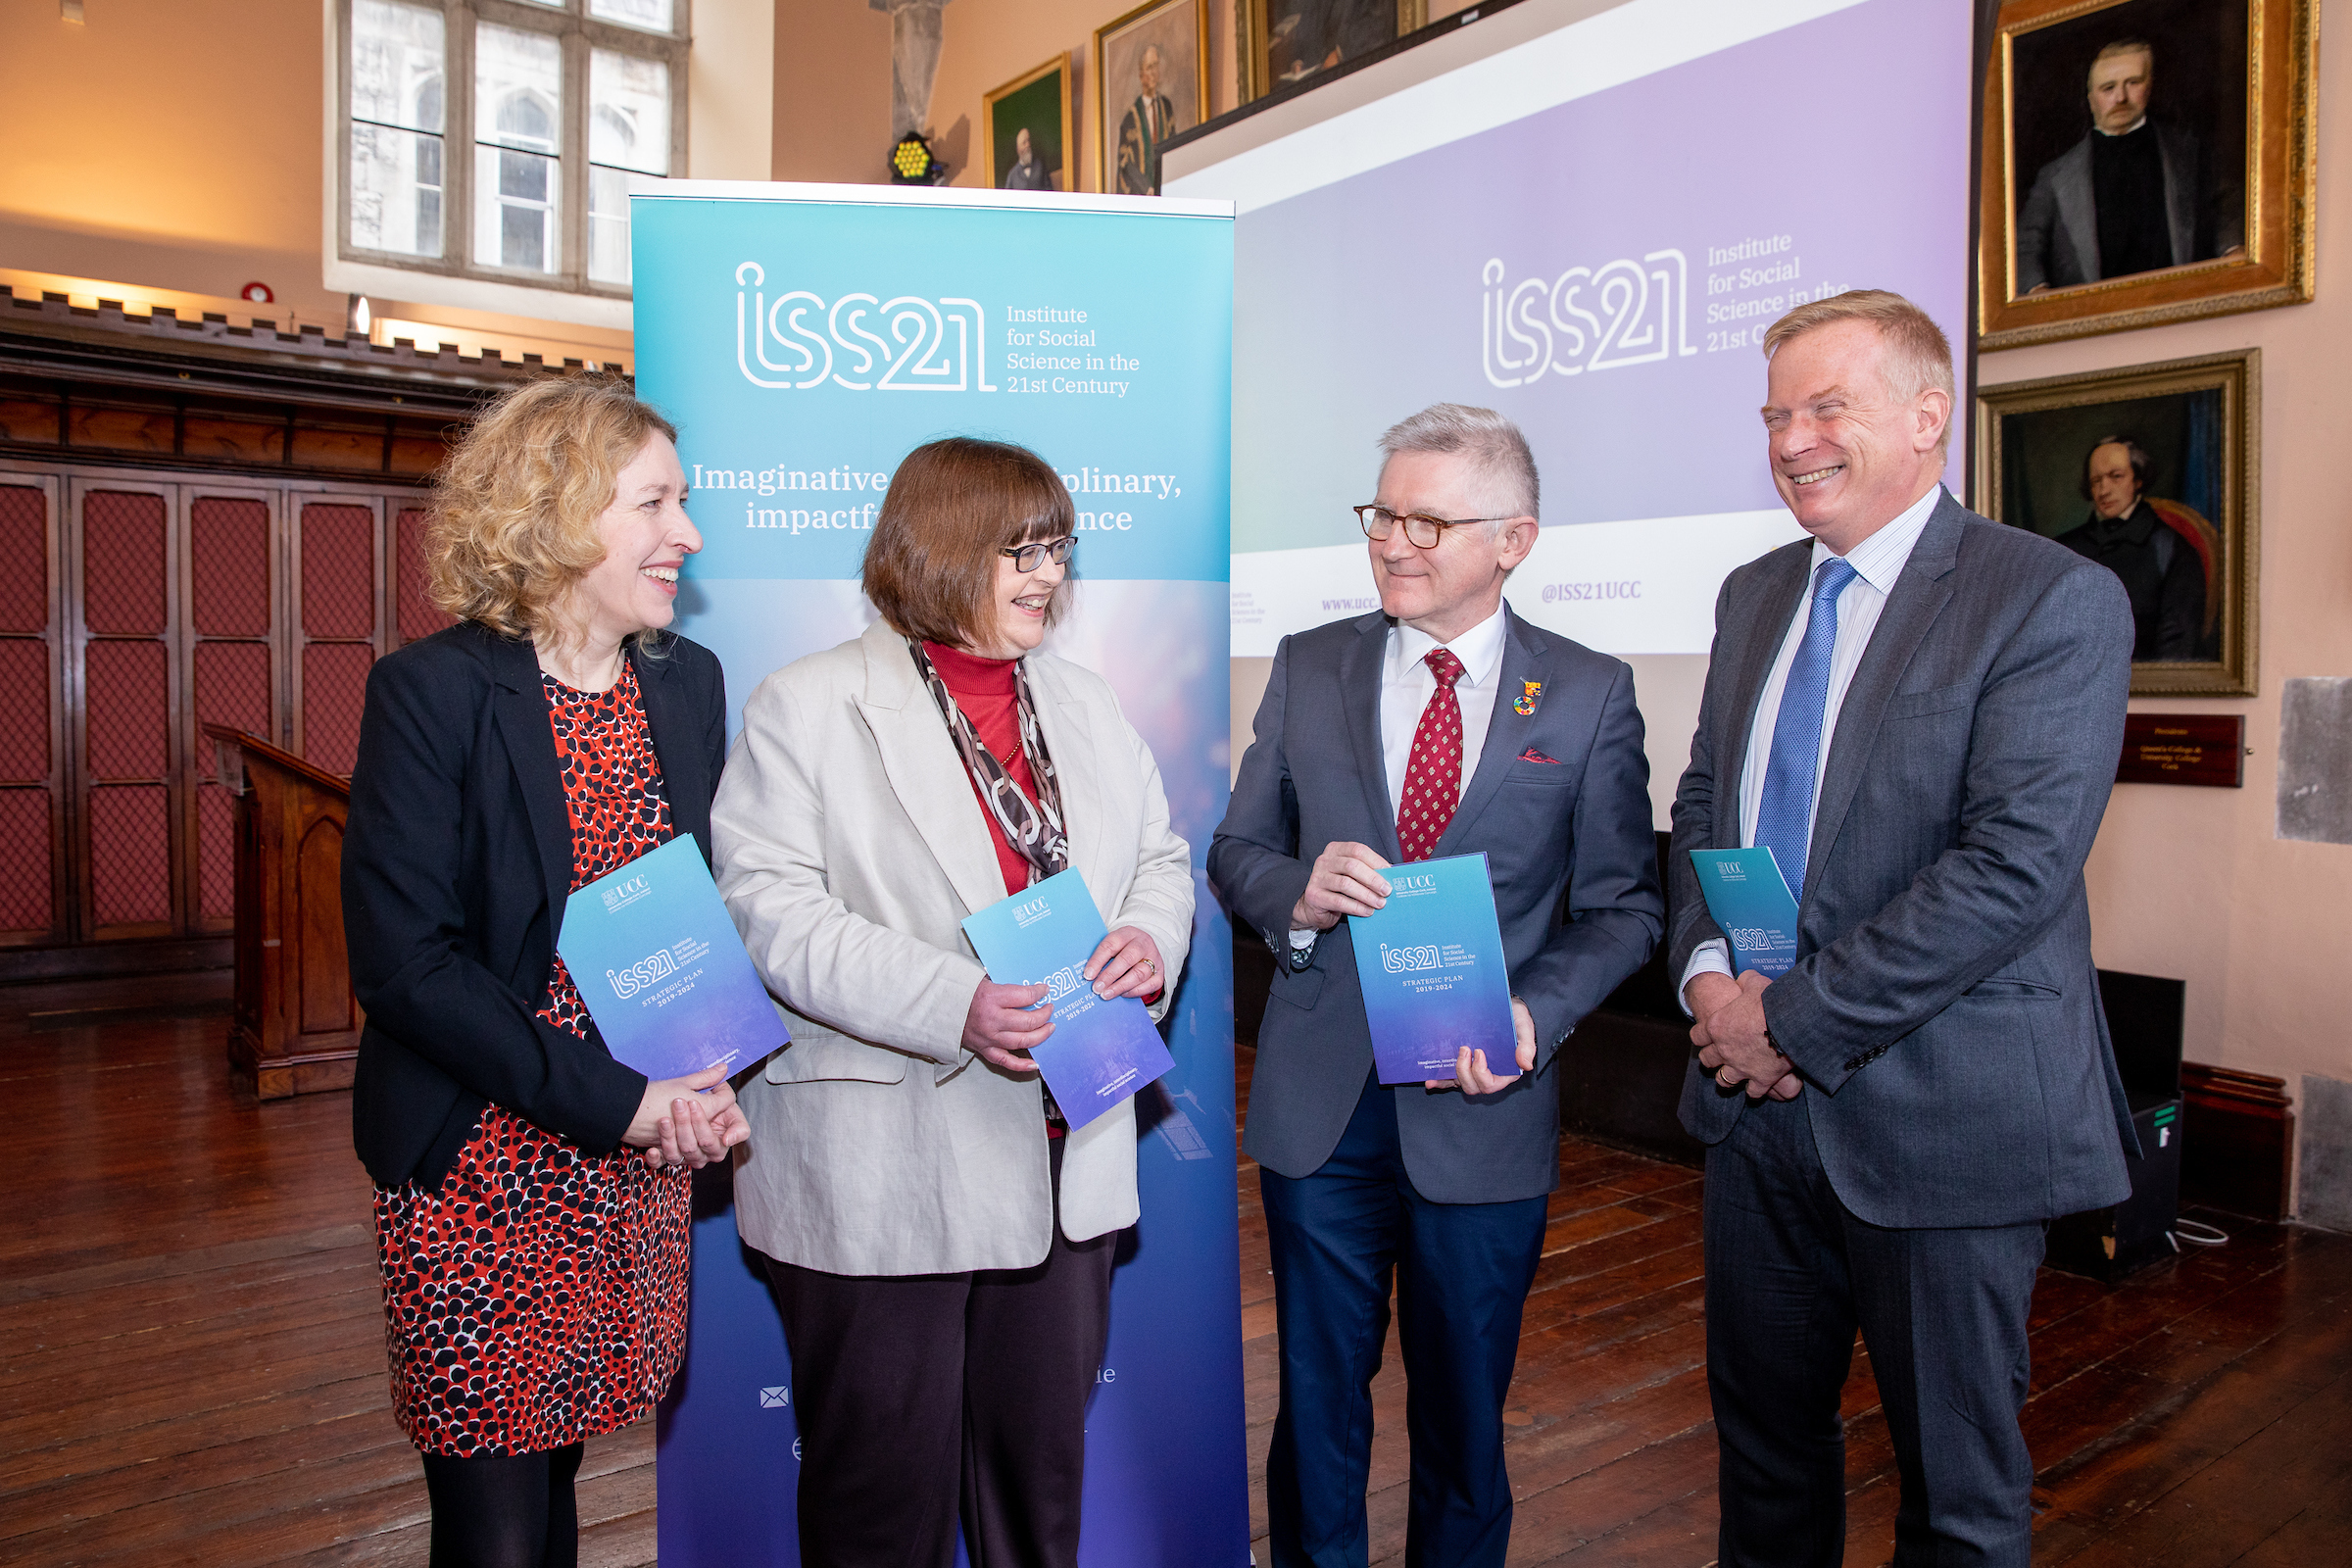 Launch of ISS21 Strategic Plan 2019-2024